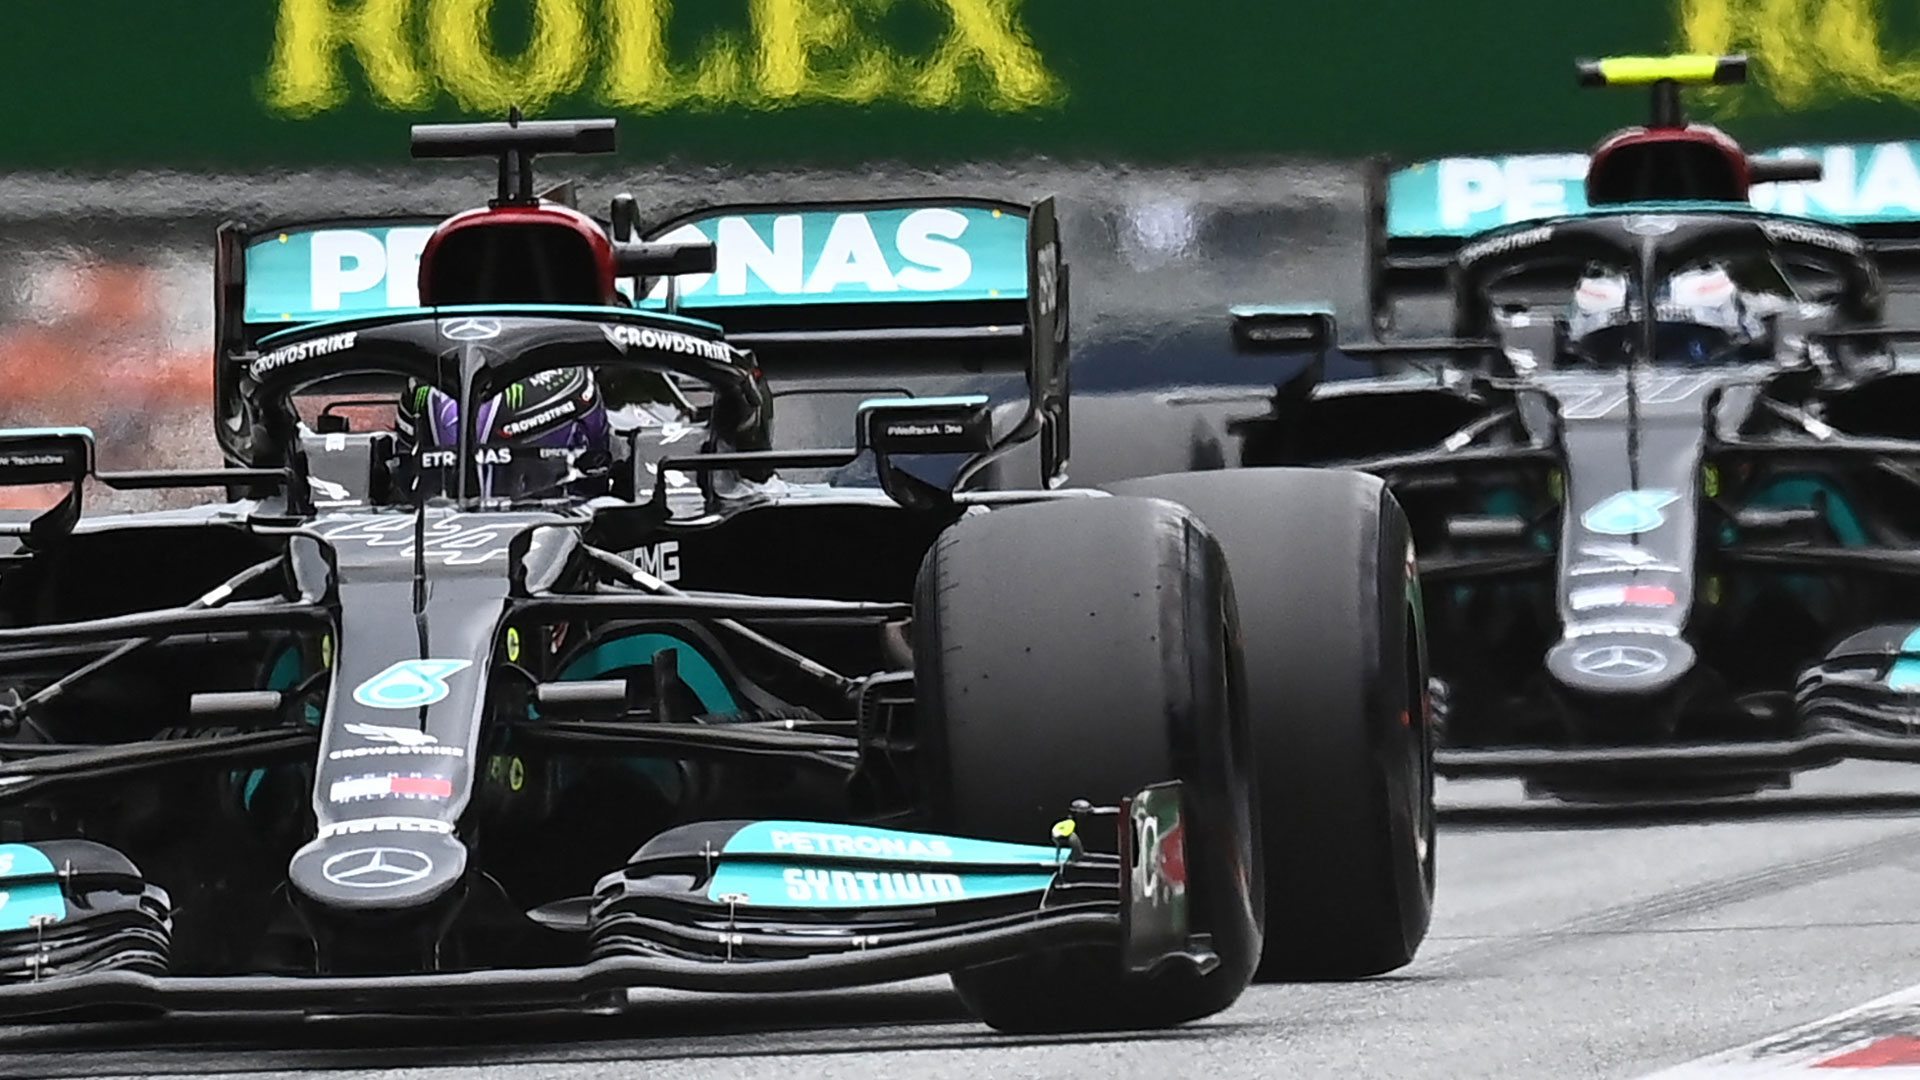 5 things we learned from Friday practice for the Austrian Grand Prix at the Red Bull Ring